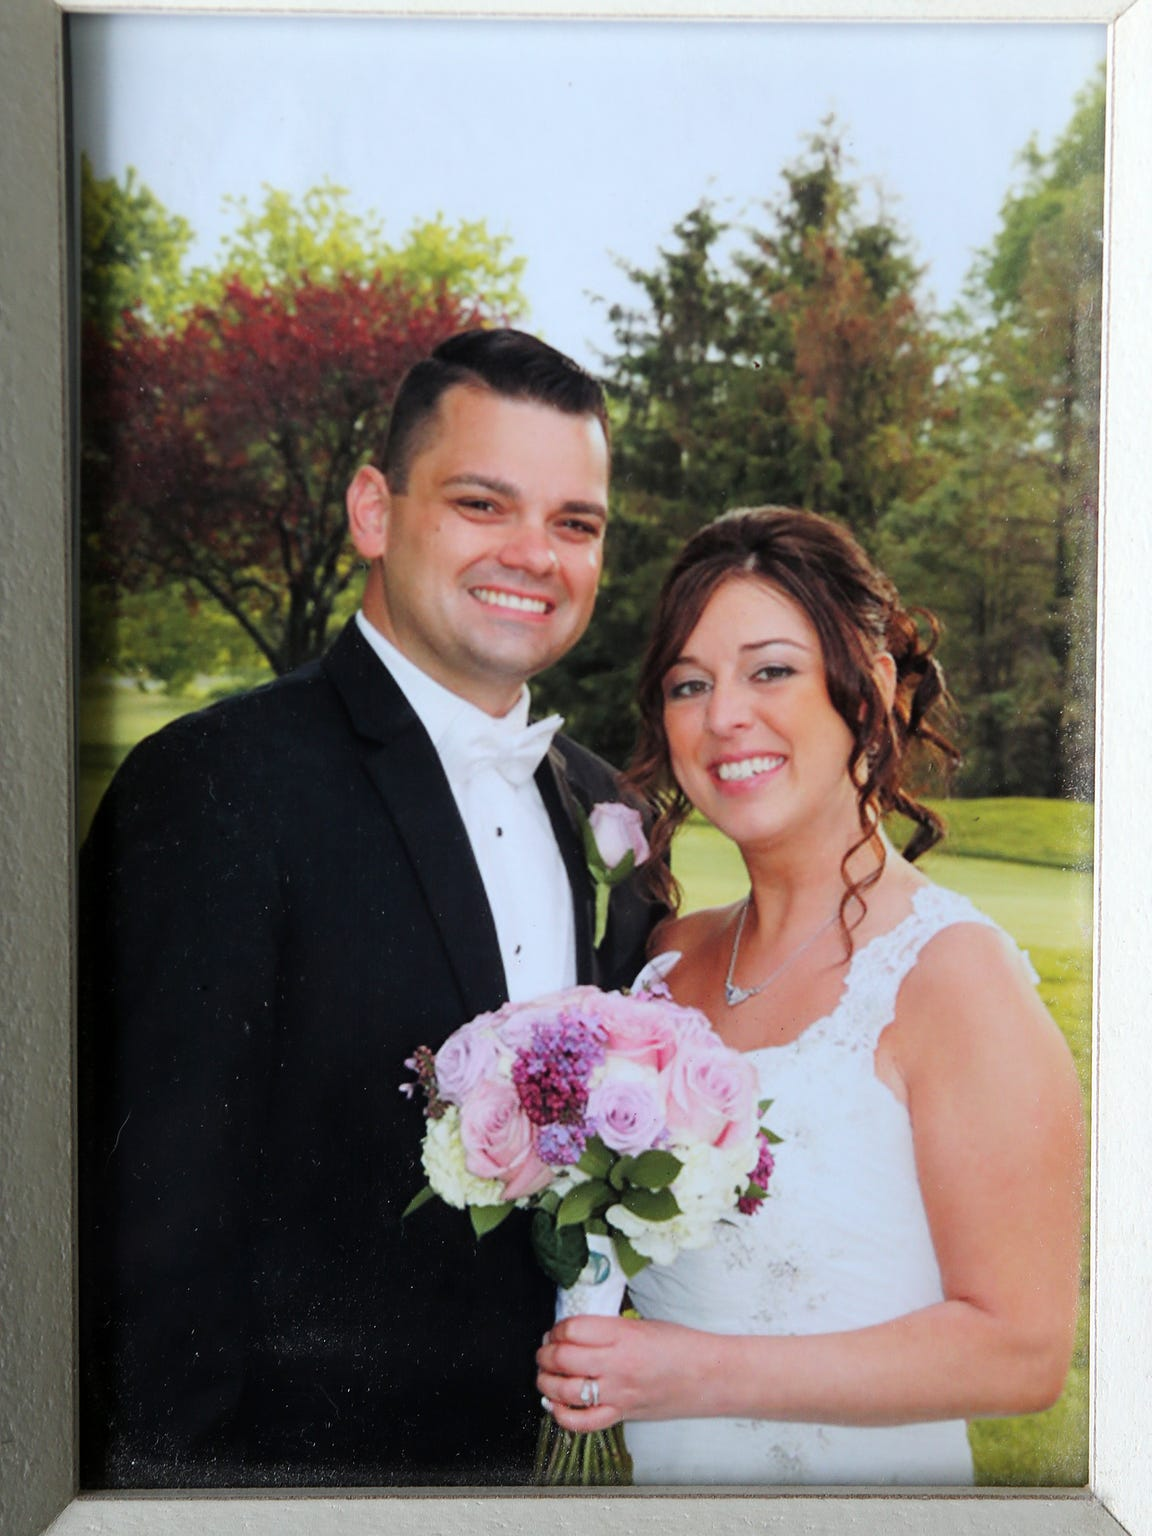 Joseph Wenskoski with his wife, Tracy Wenskoski, on their wedding day, May 15, 2015.